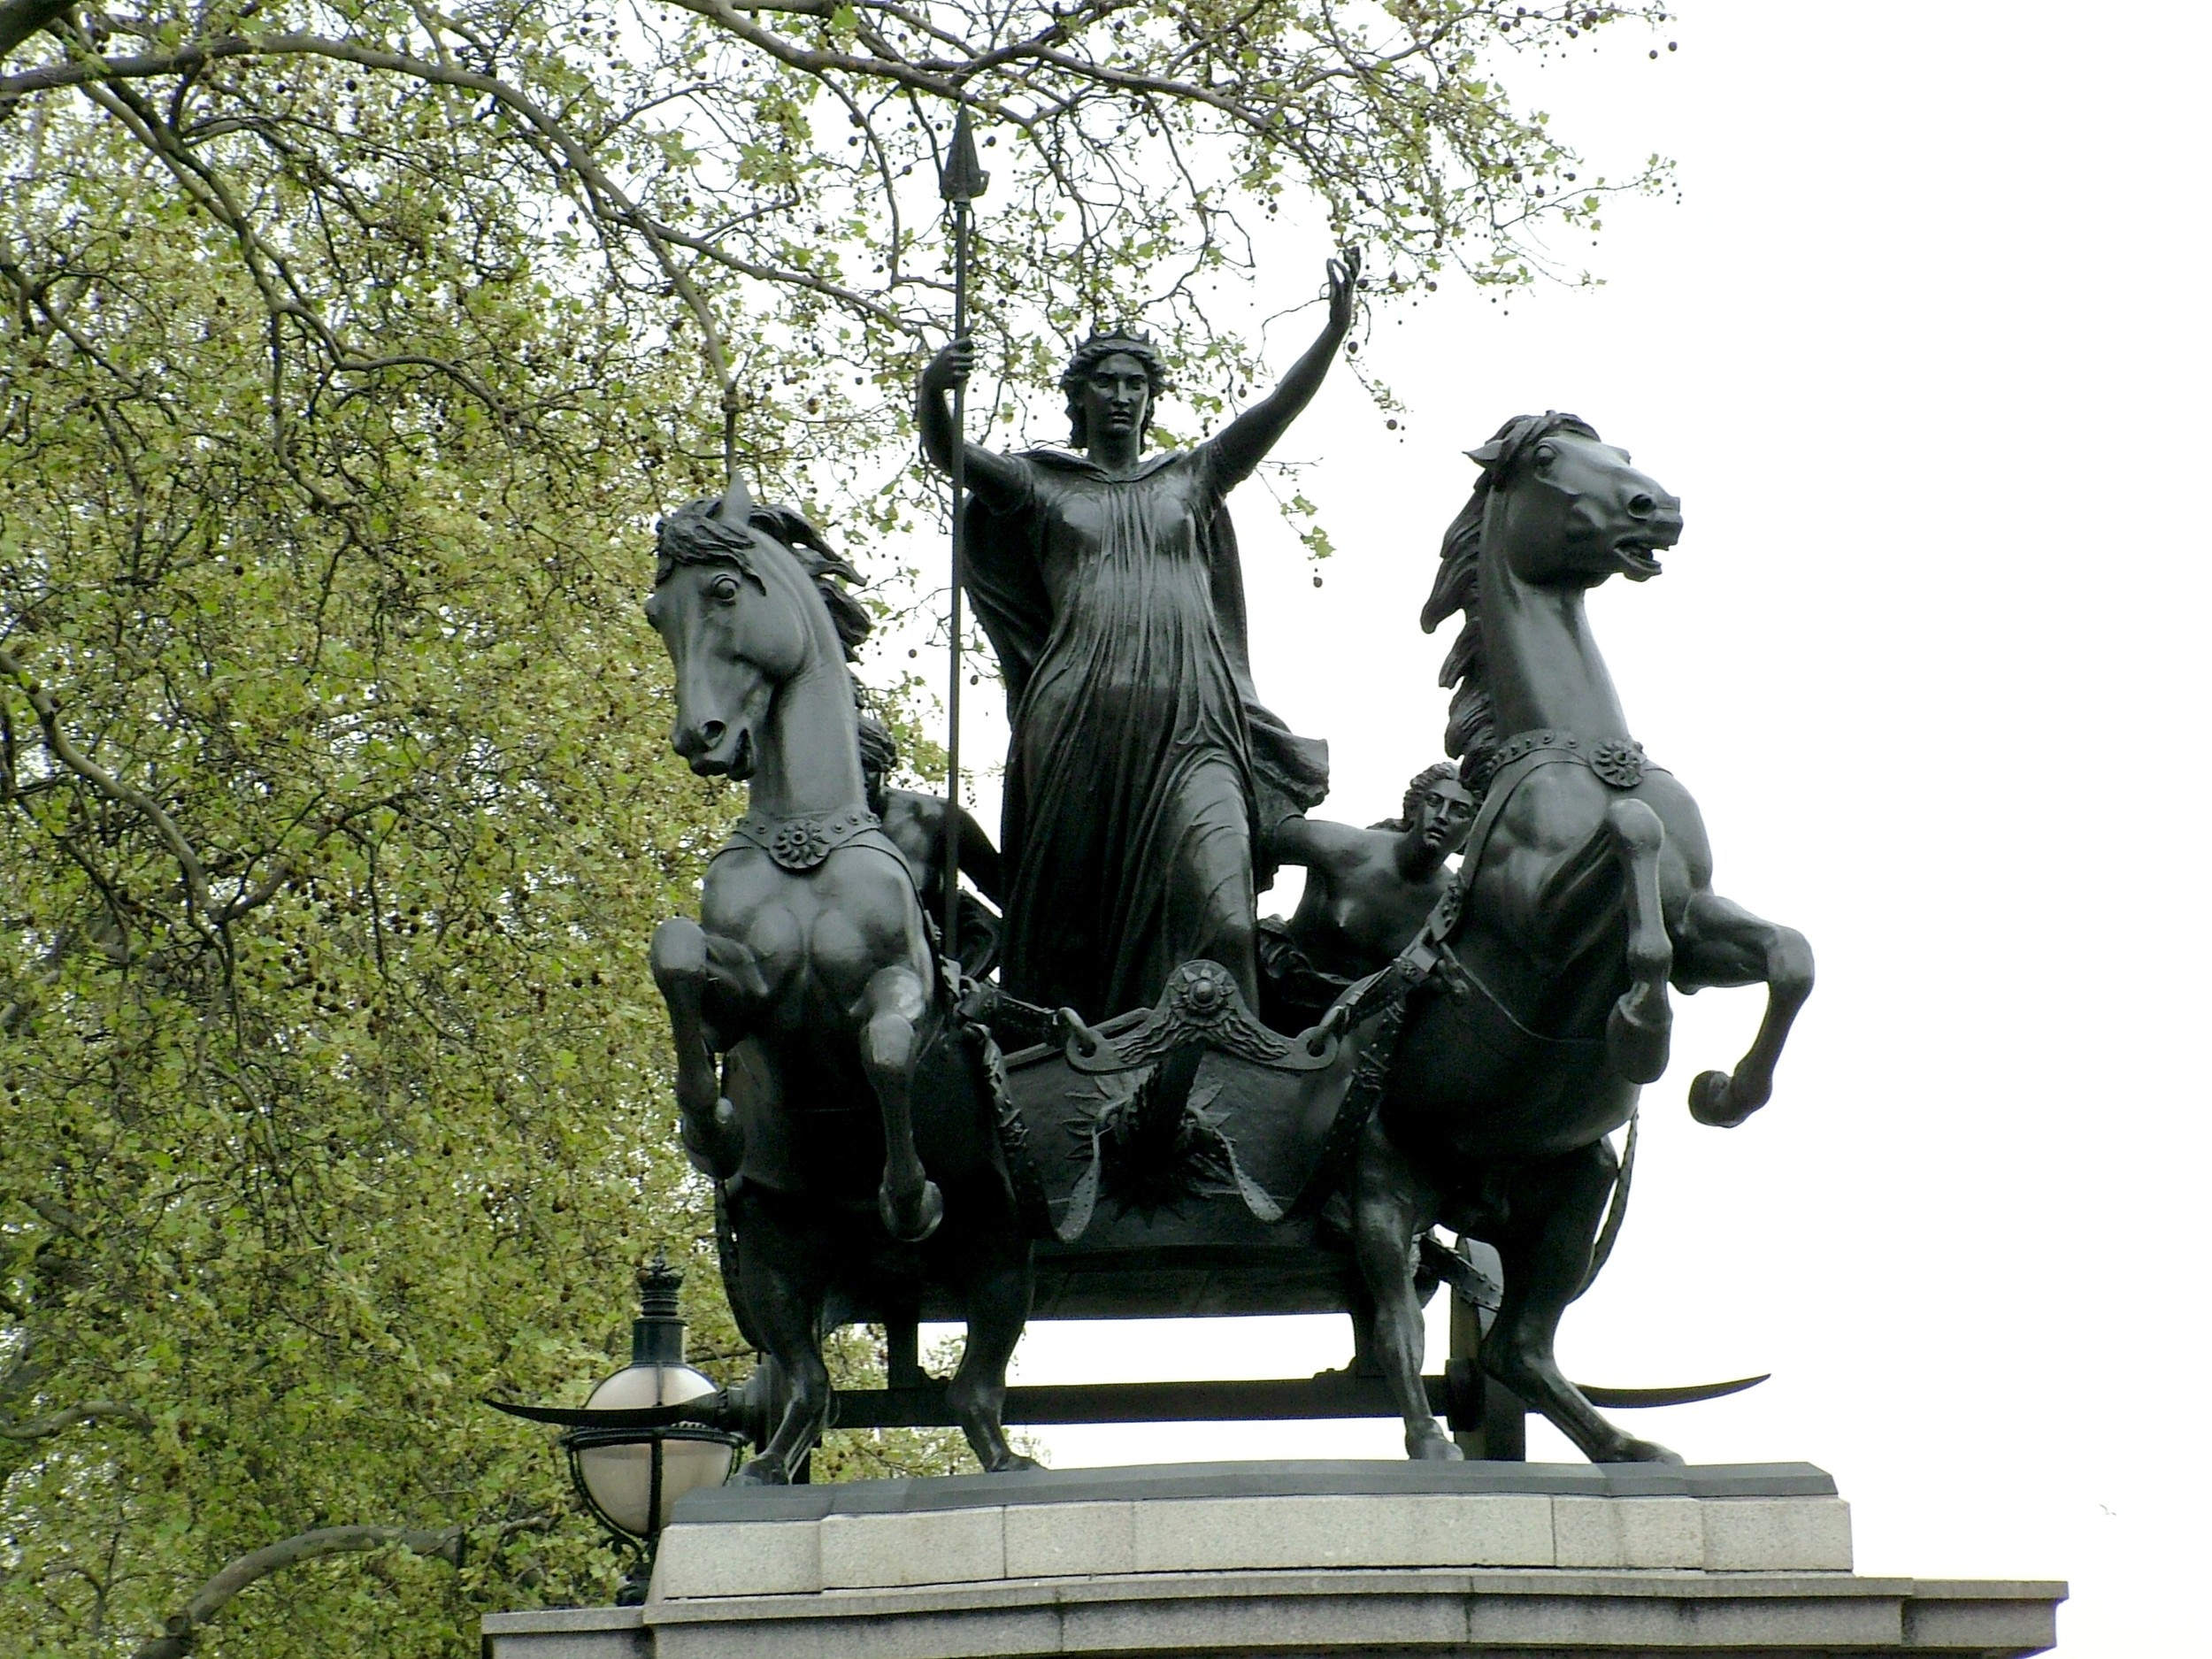 Statue of Boudica and her daughters near Westminster Bridge, London. This Victorian statue is not very accurate regarding her clothing, the chariot etc.  (By No machine-readable author provided. Lily15 own work assumed (based on copyright claims), CC BY-SA 3.0, https://commons.wikimedia.org/w/index.php?curid=1601437)